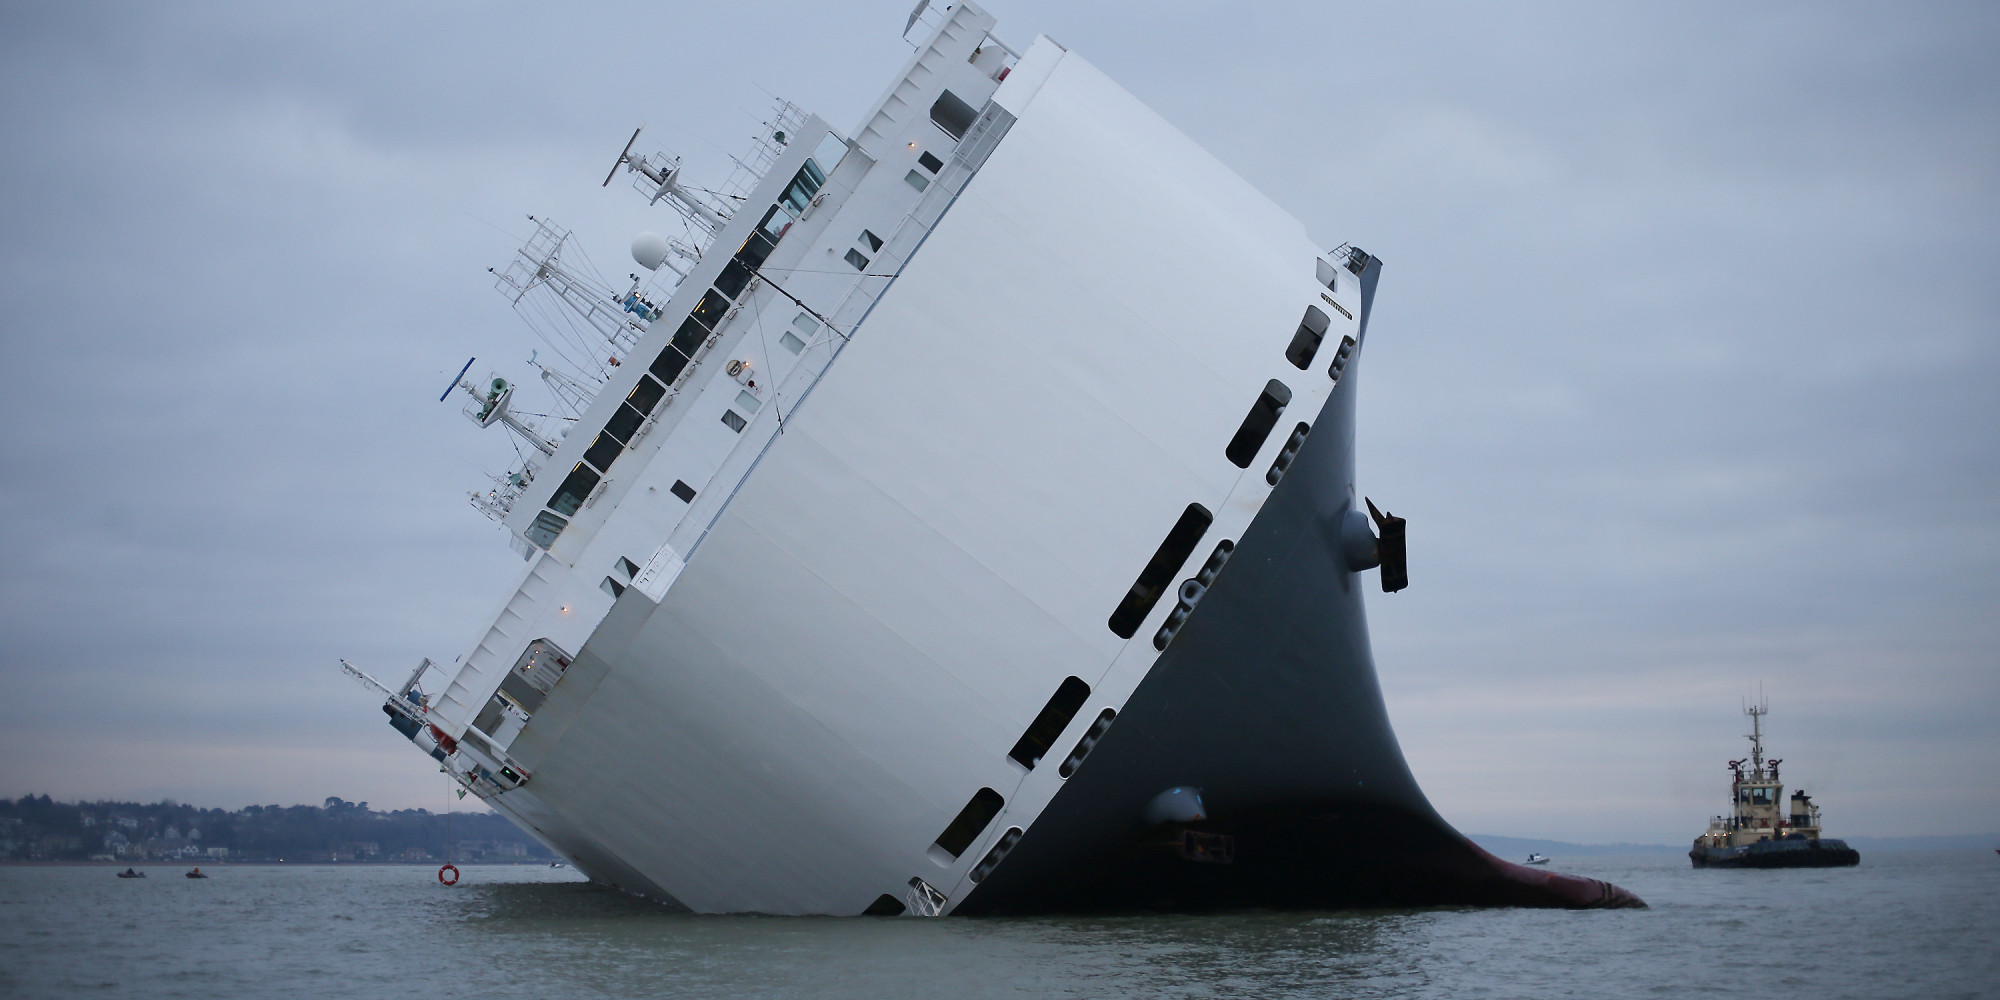 Crew Rescued From Listing Car Carrier Ship Hoegh Osaka